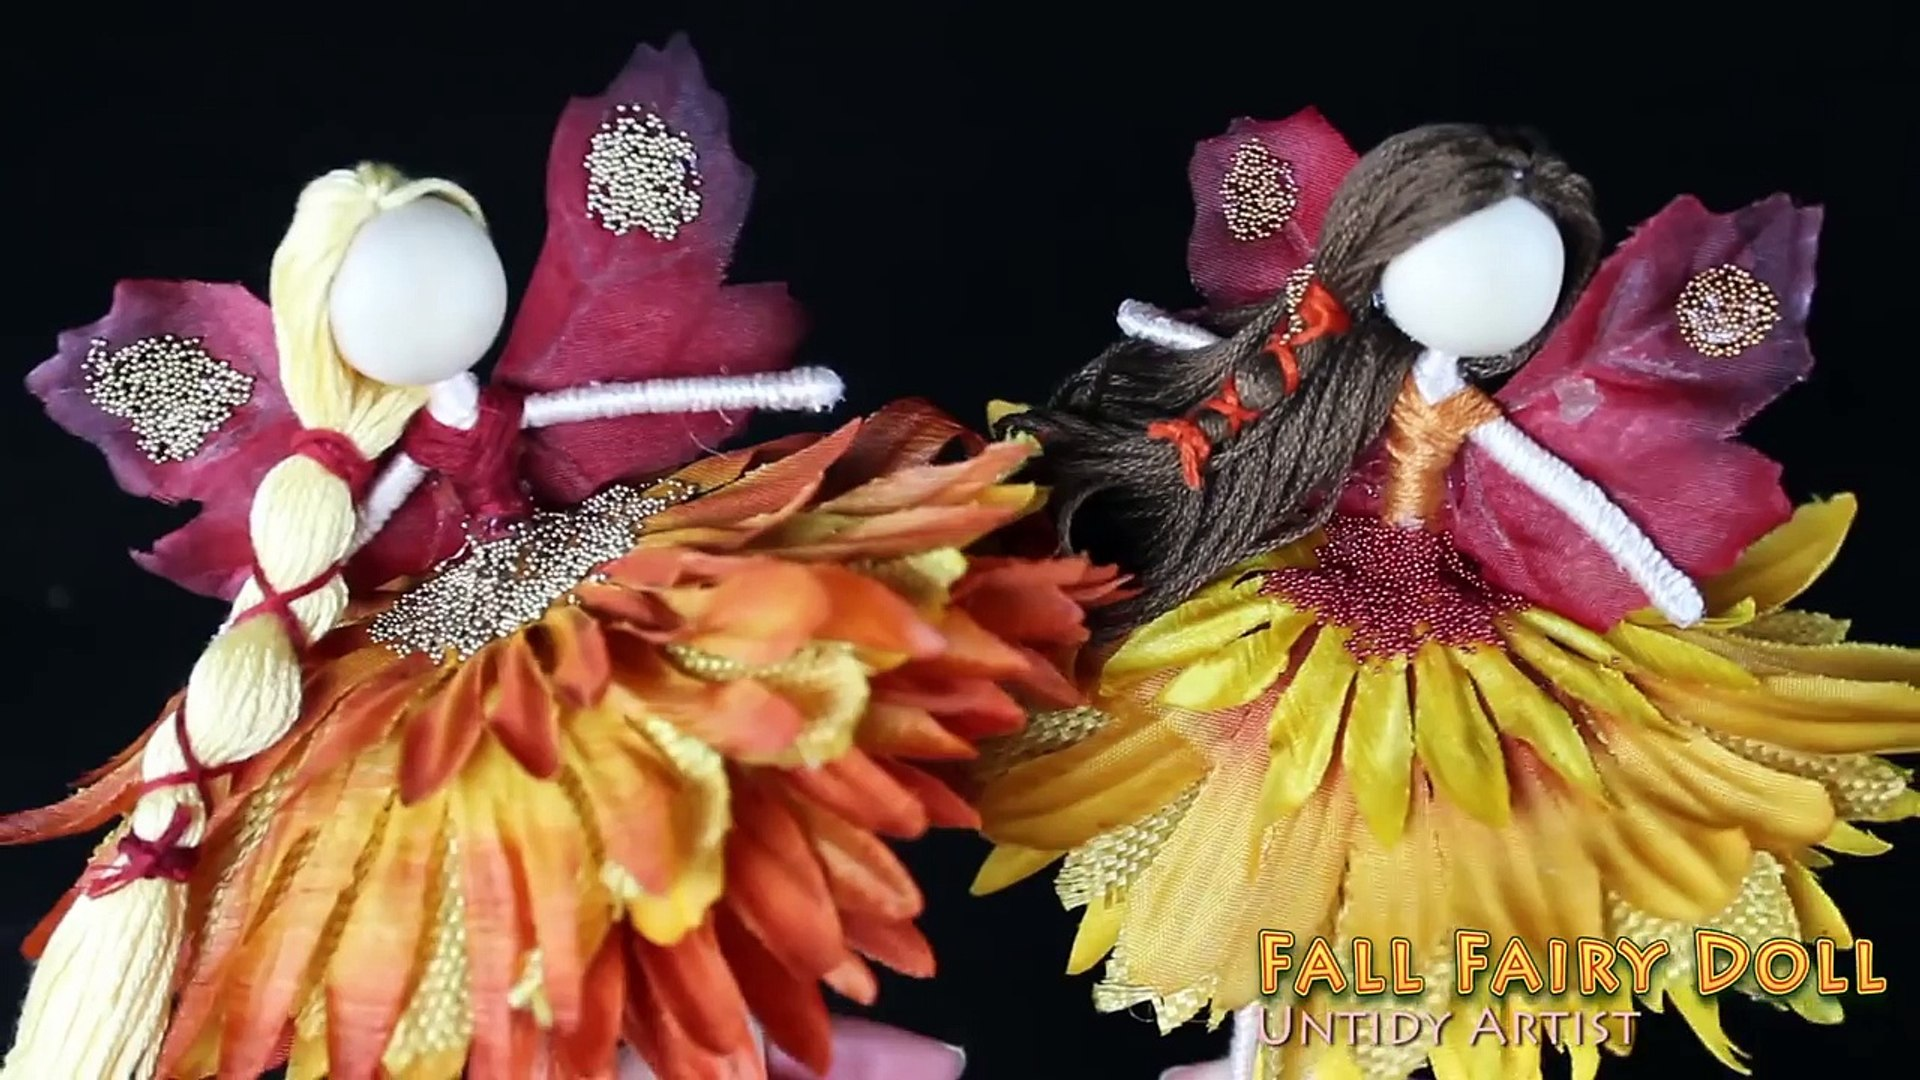 DIY Fall Fairy Doll with Fairy Wings